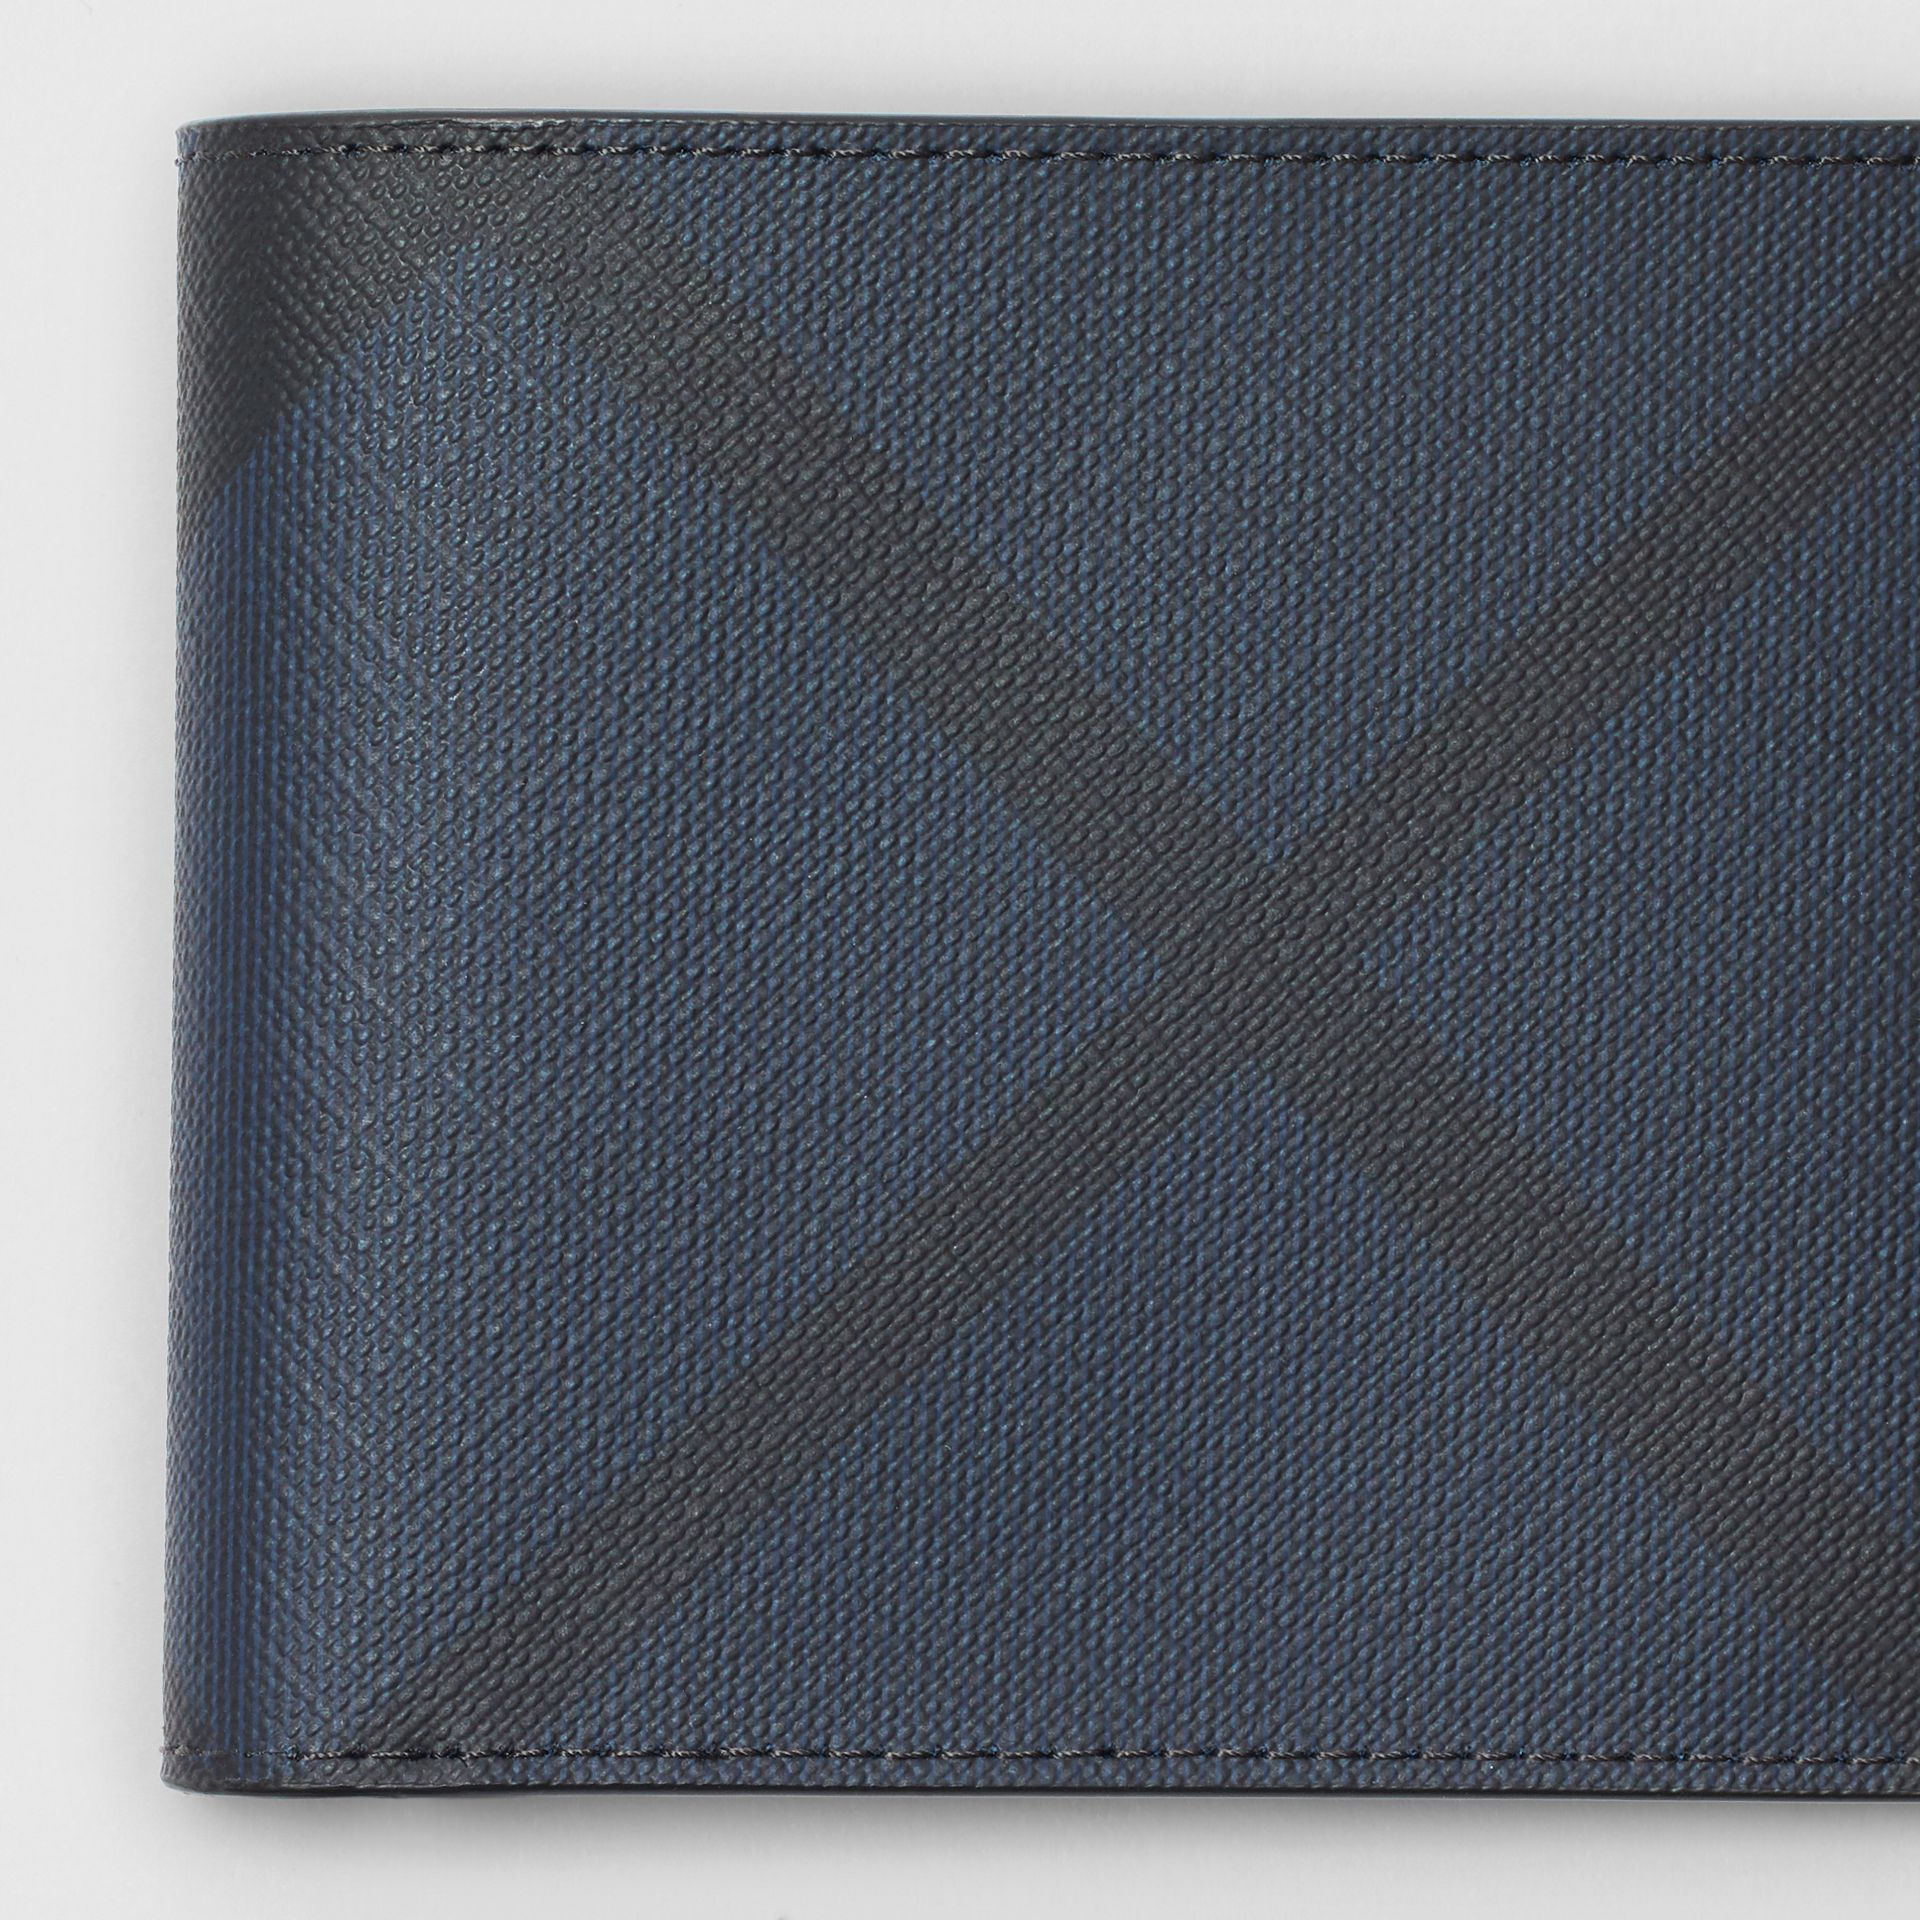 London Check and Leather International Bifold Wallet in Navy/black - Men | Burberry - gallery image 1